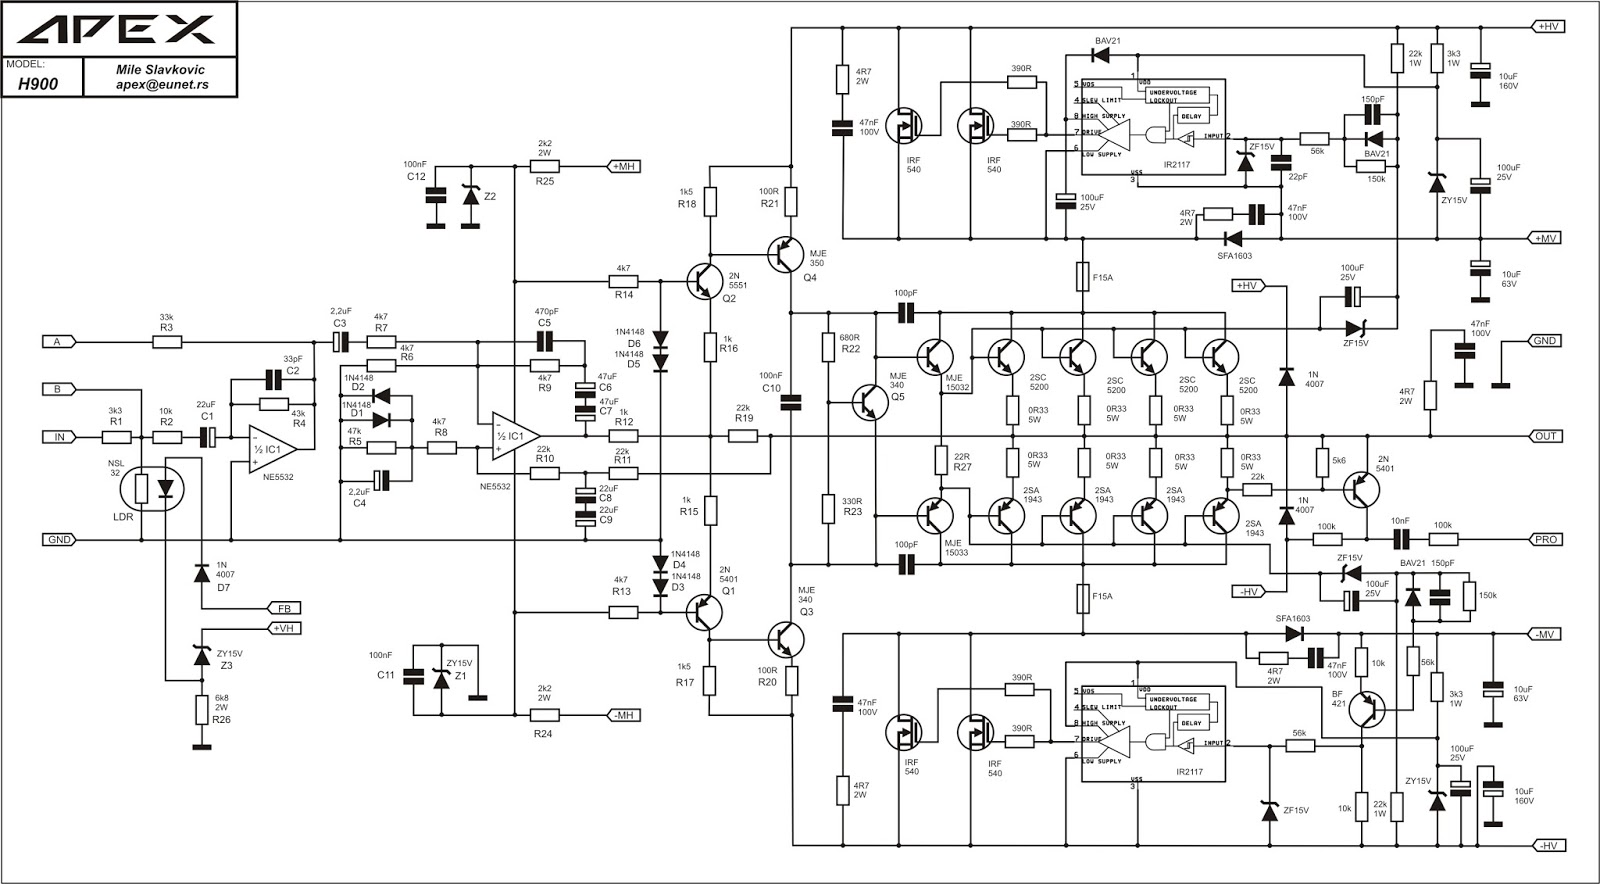 pin class h schematic manufacturers in lulusosocom on